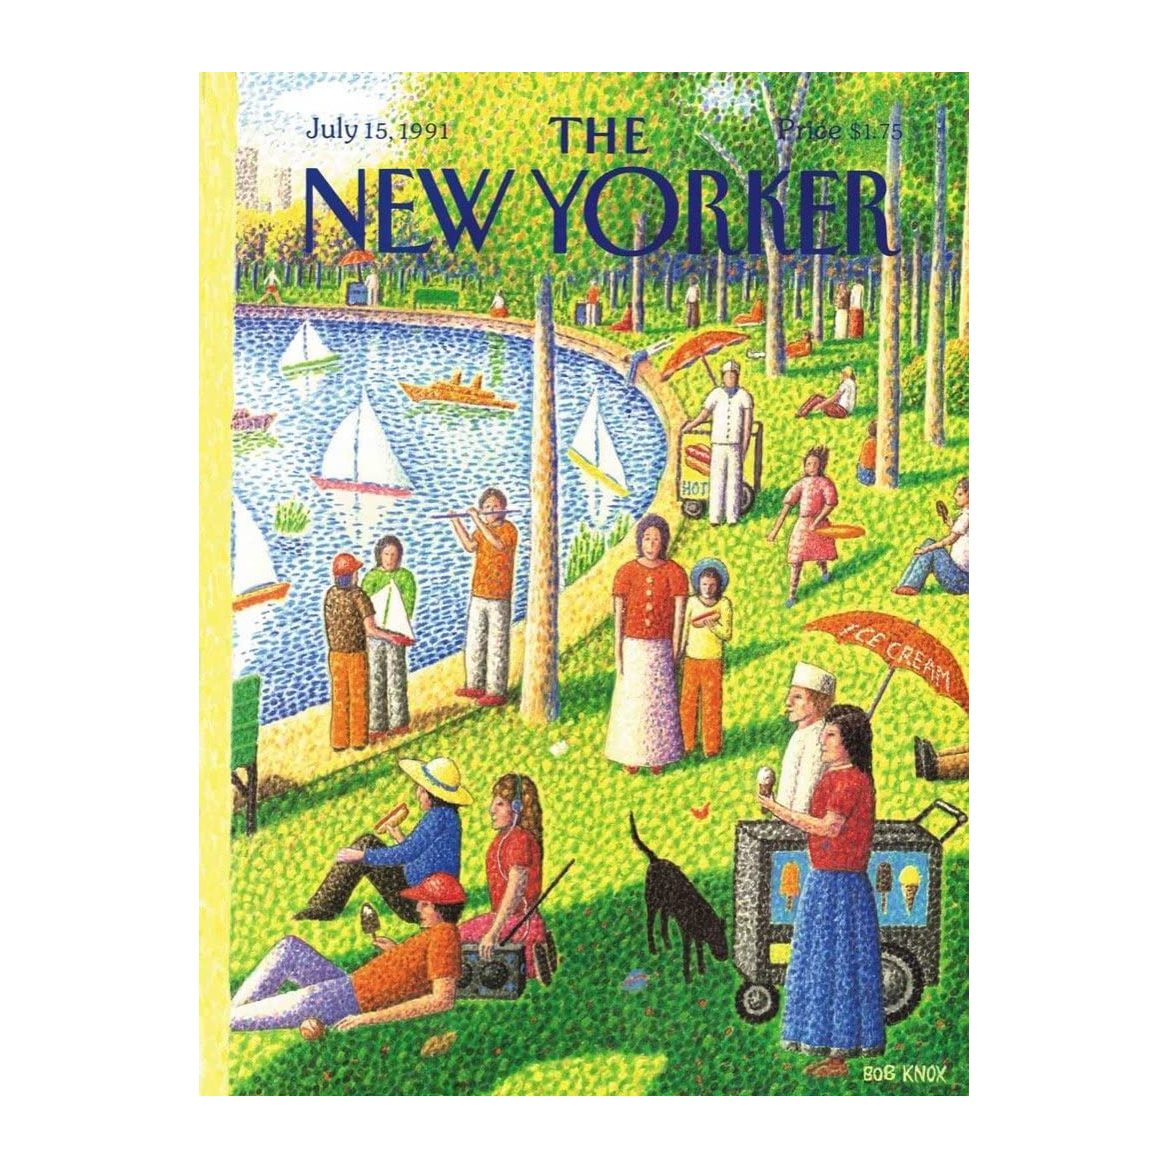 New Yorker Sunday in Central Park Puzzle from New York Puzzle Company